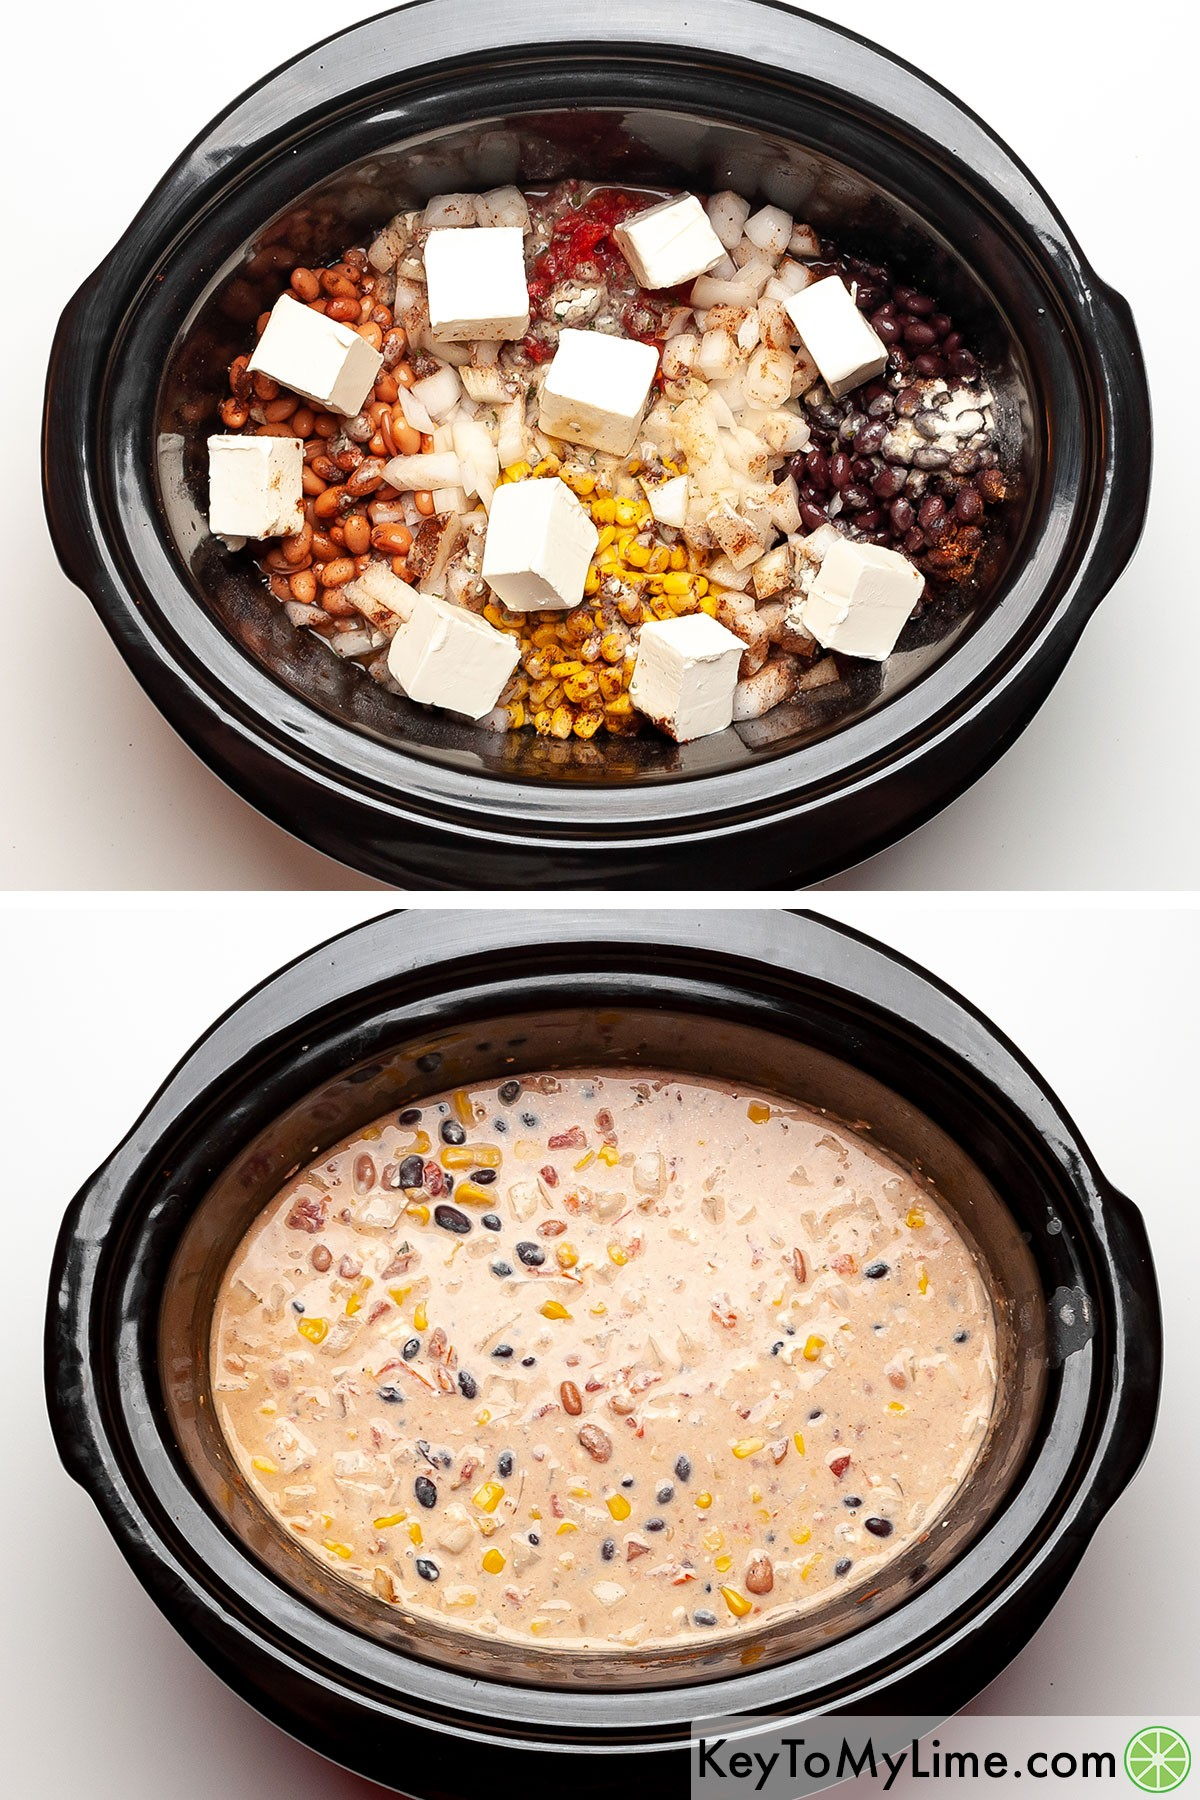 A process collage showing adding cream cheese to the chili ingredients, and then what it looks like after it cooks in the slow cooker.